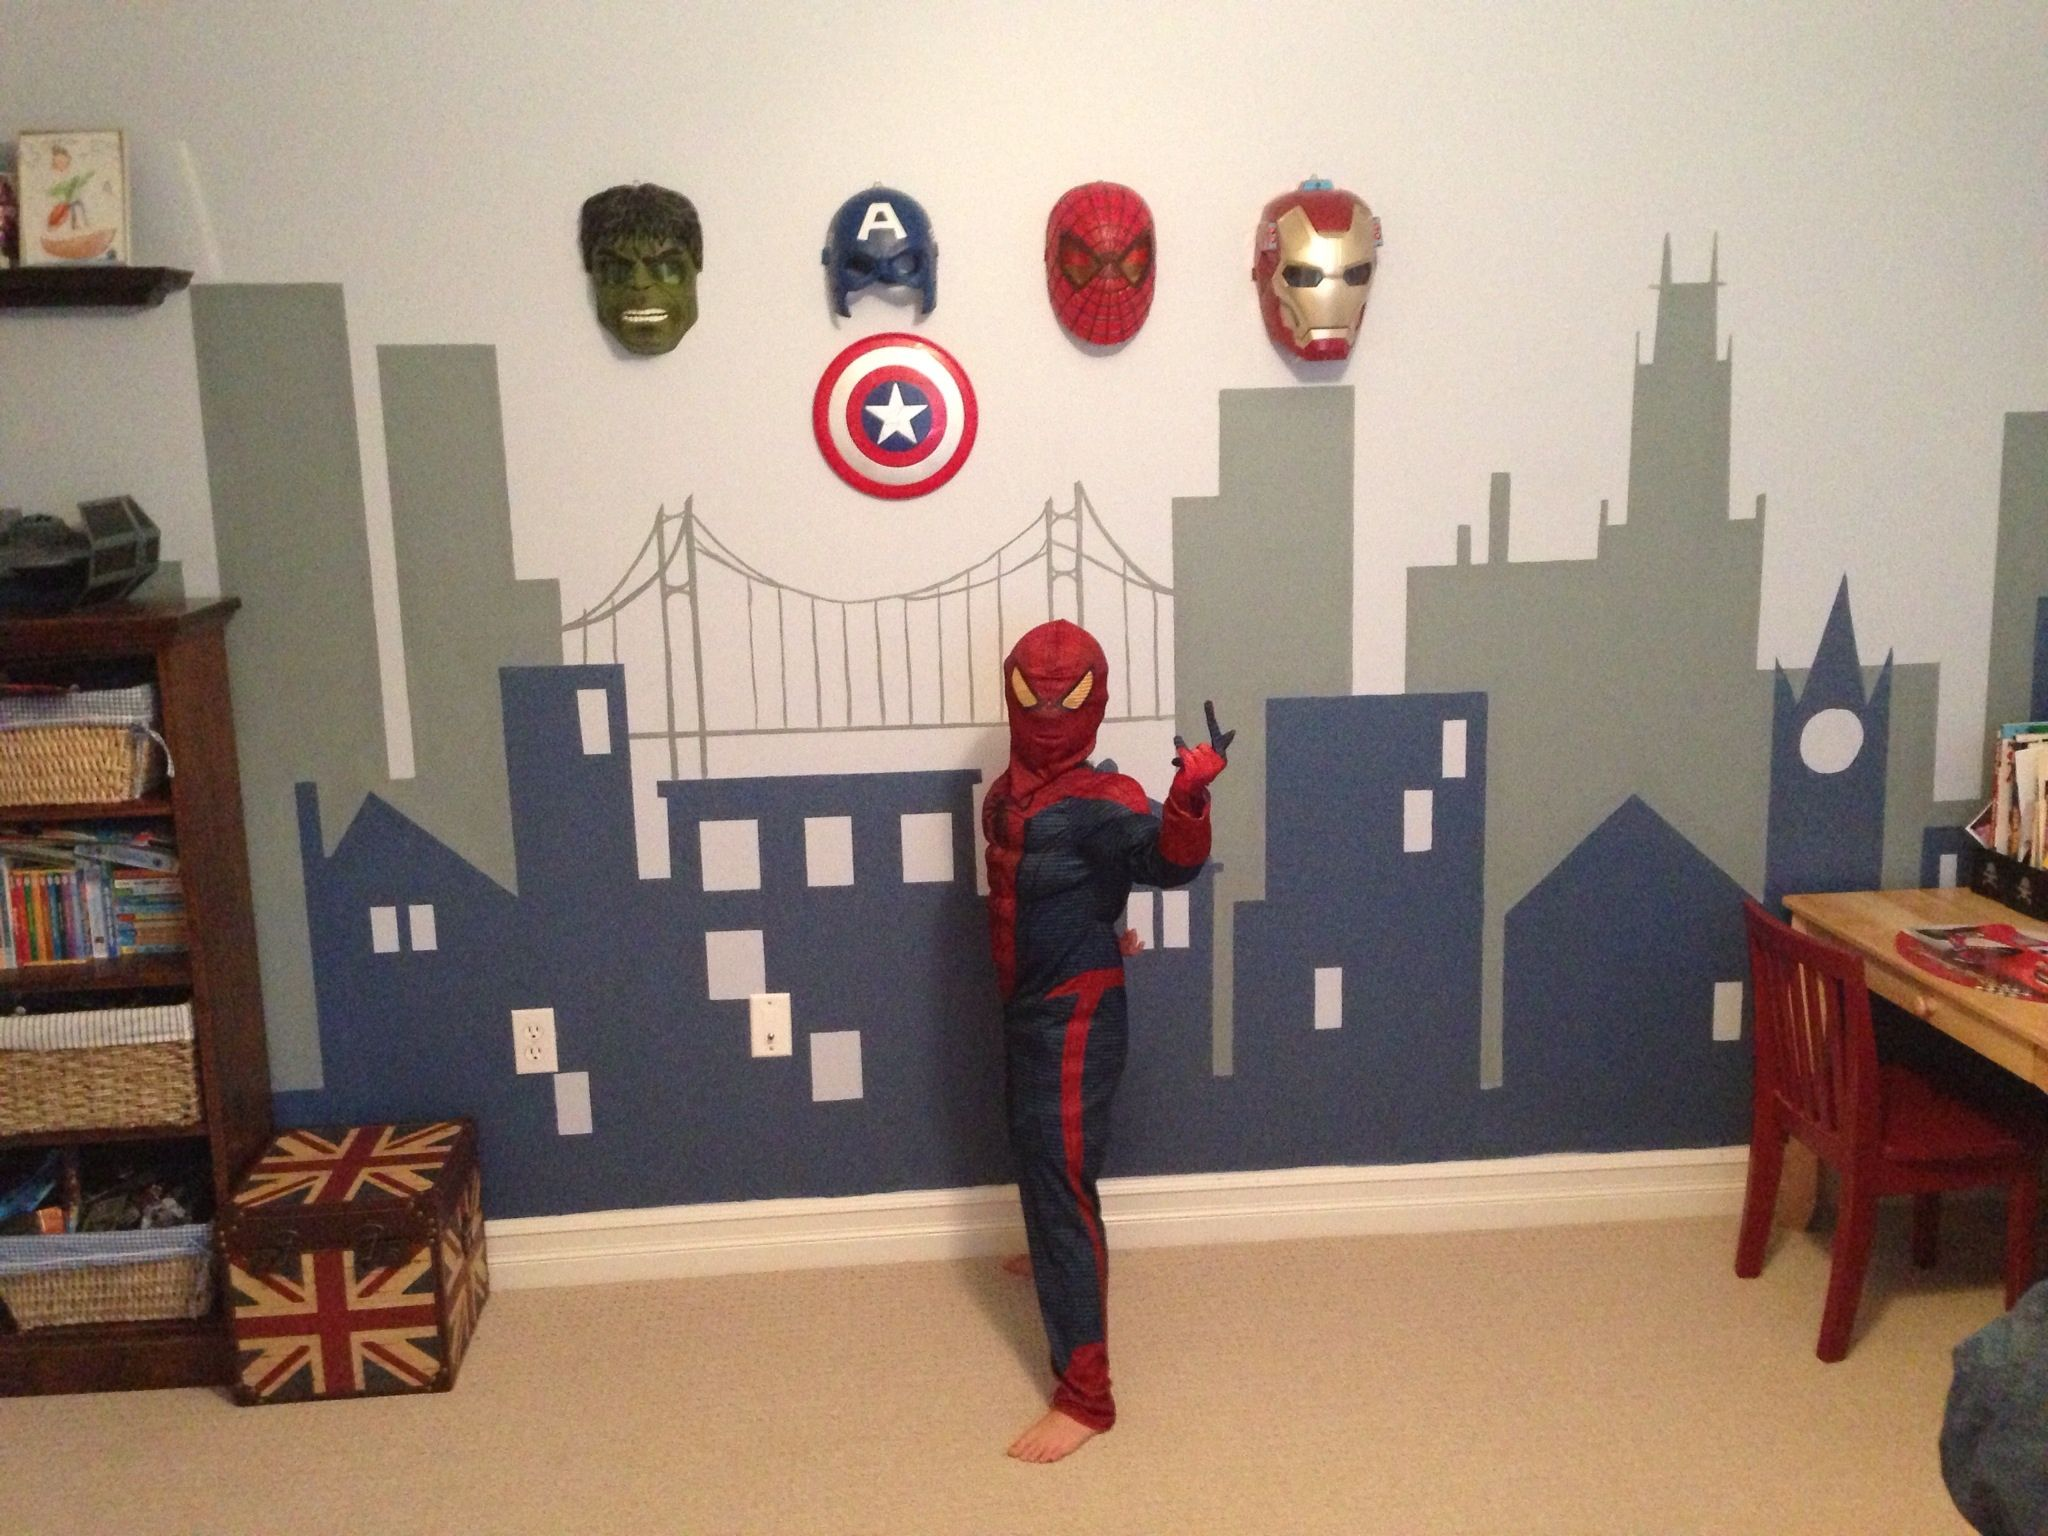 I like the idea of hanging the masks on the wall Pinterest boys room ideas